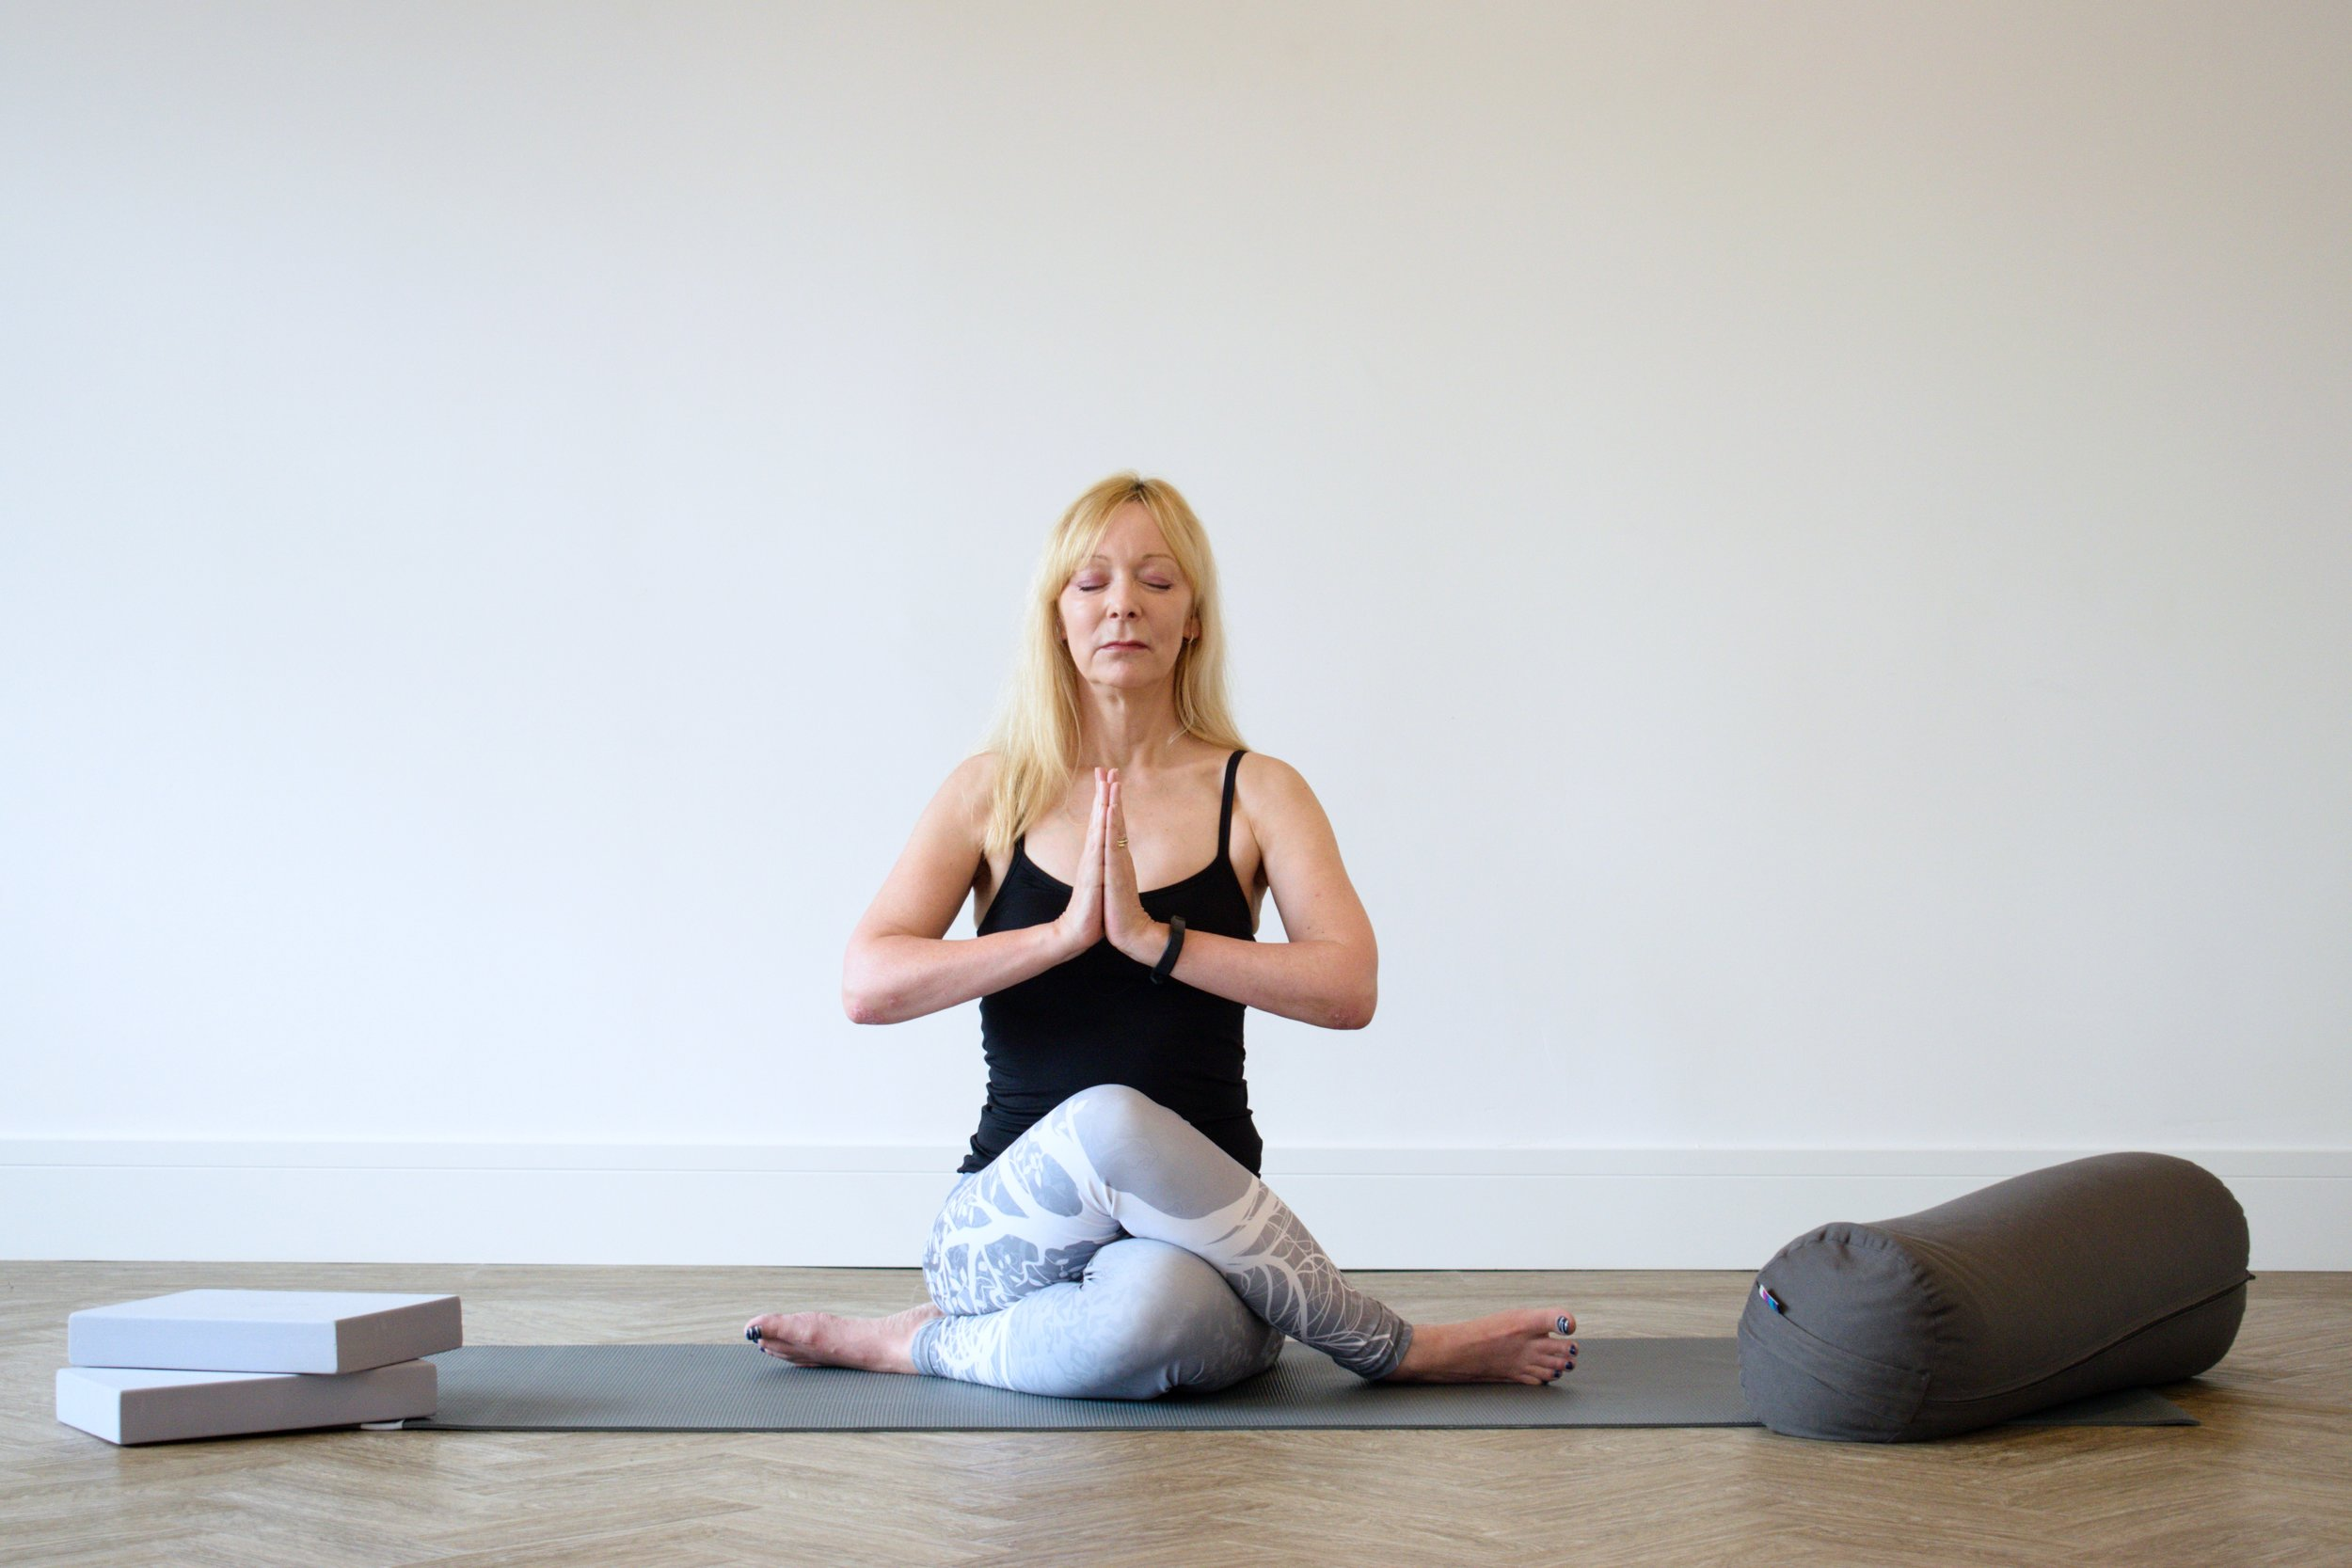 Unwind & Be Still - A blend of mindful postures and breathing techniques to release the body and connect the mind. This mat-based class is a way to truly unwind. You will leave this class feeling rested and revitalised